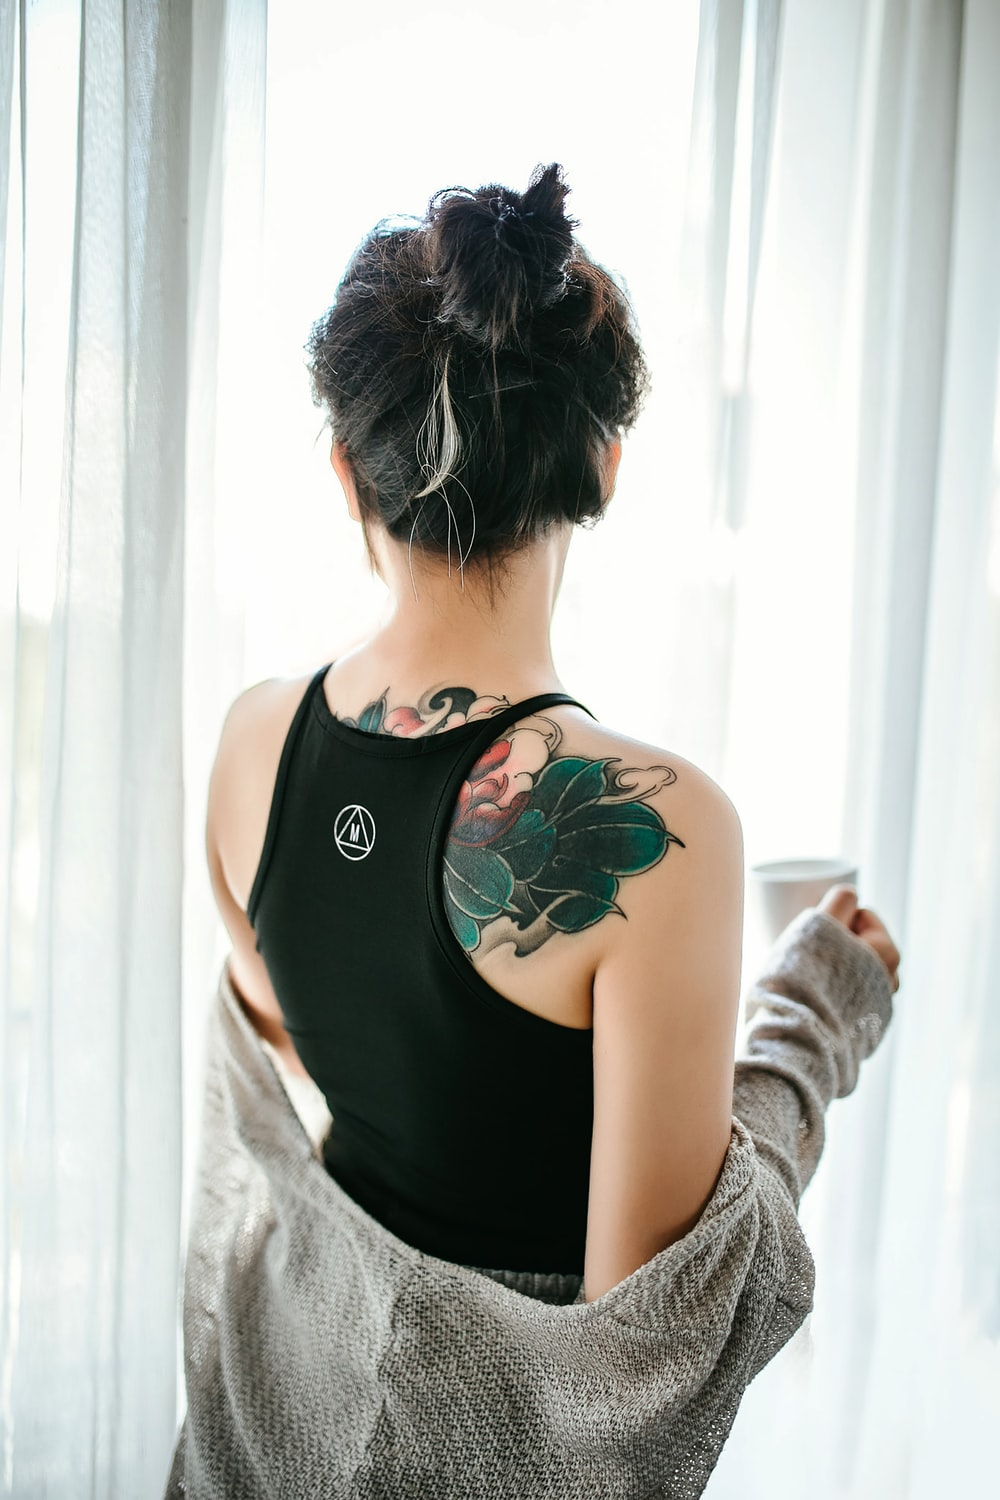 woman in black tank top with green floral tattoo on her back